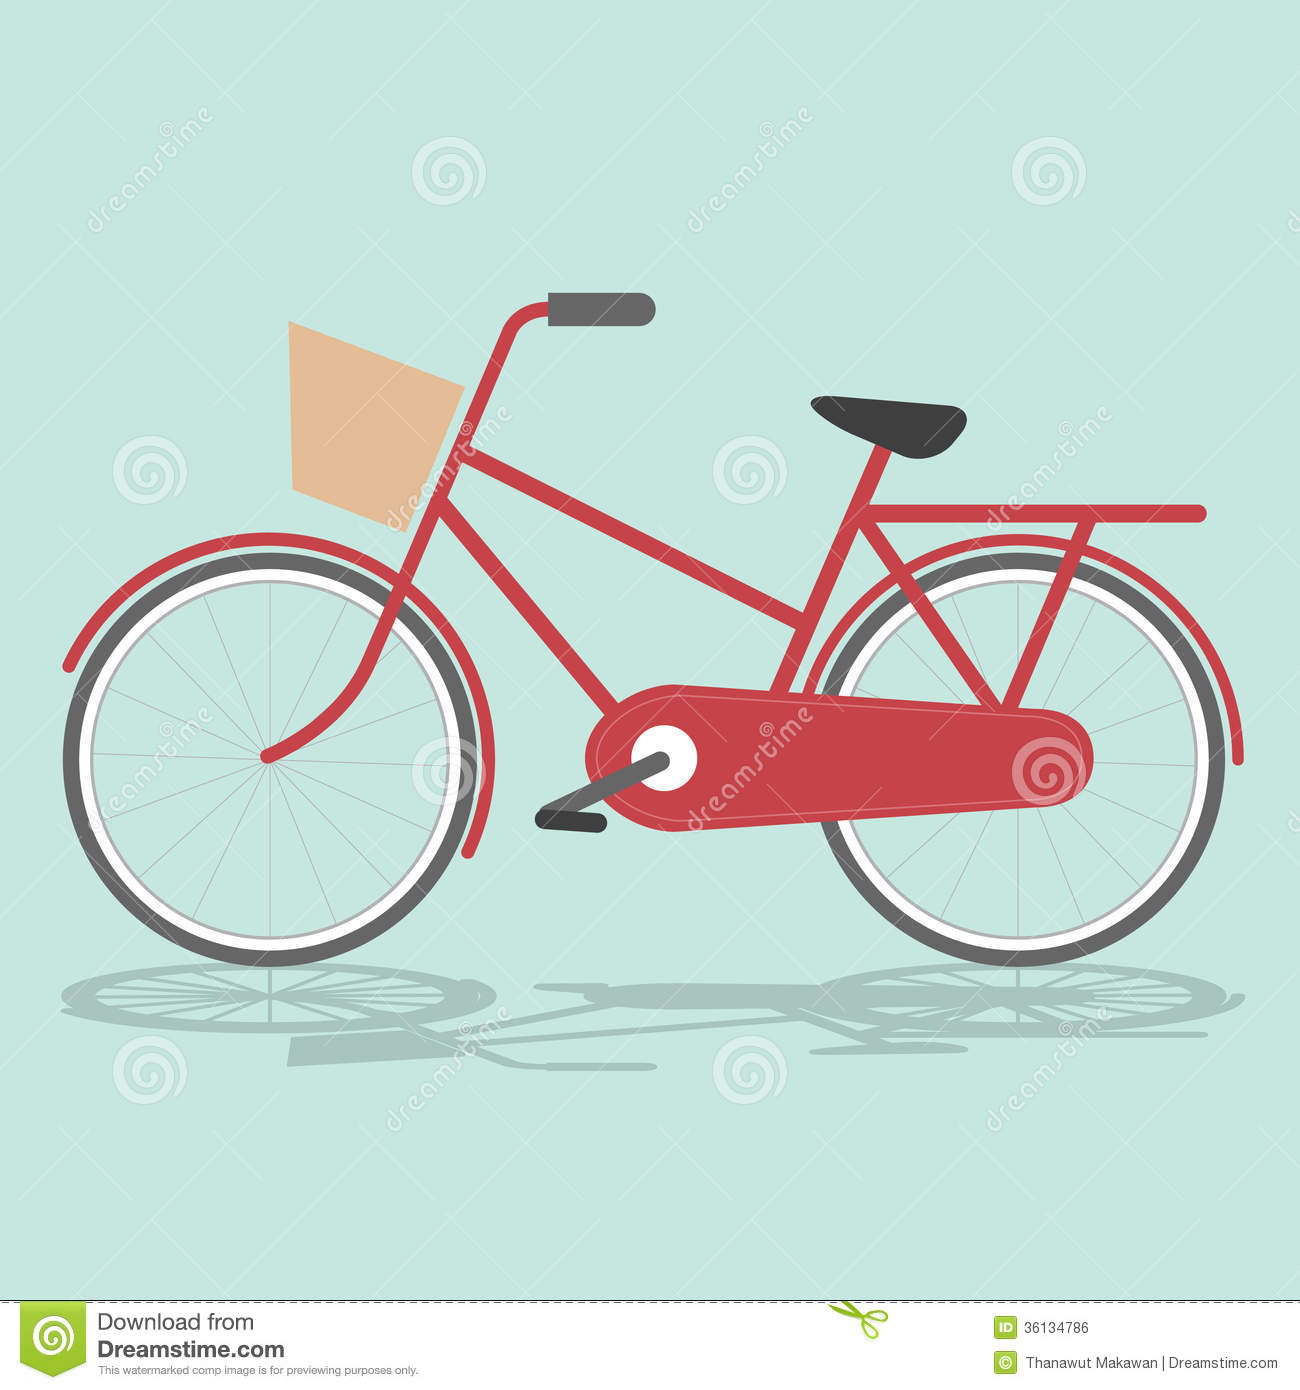 Bicycle illustration retro - photo#5